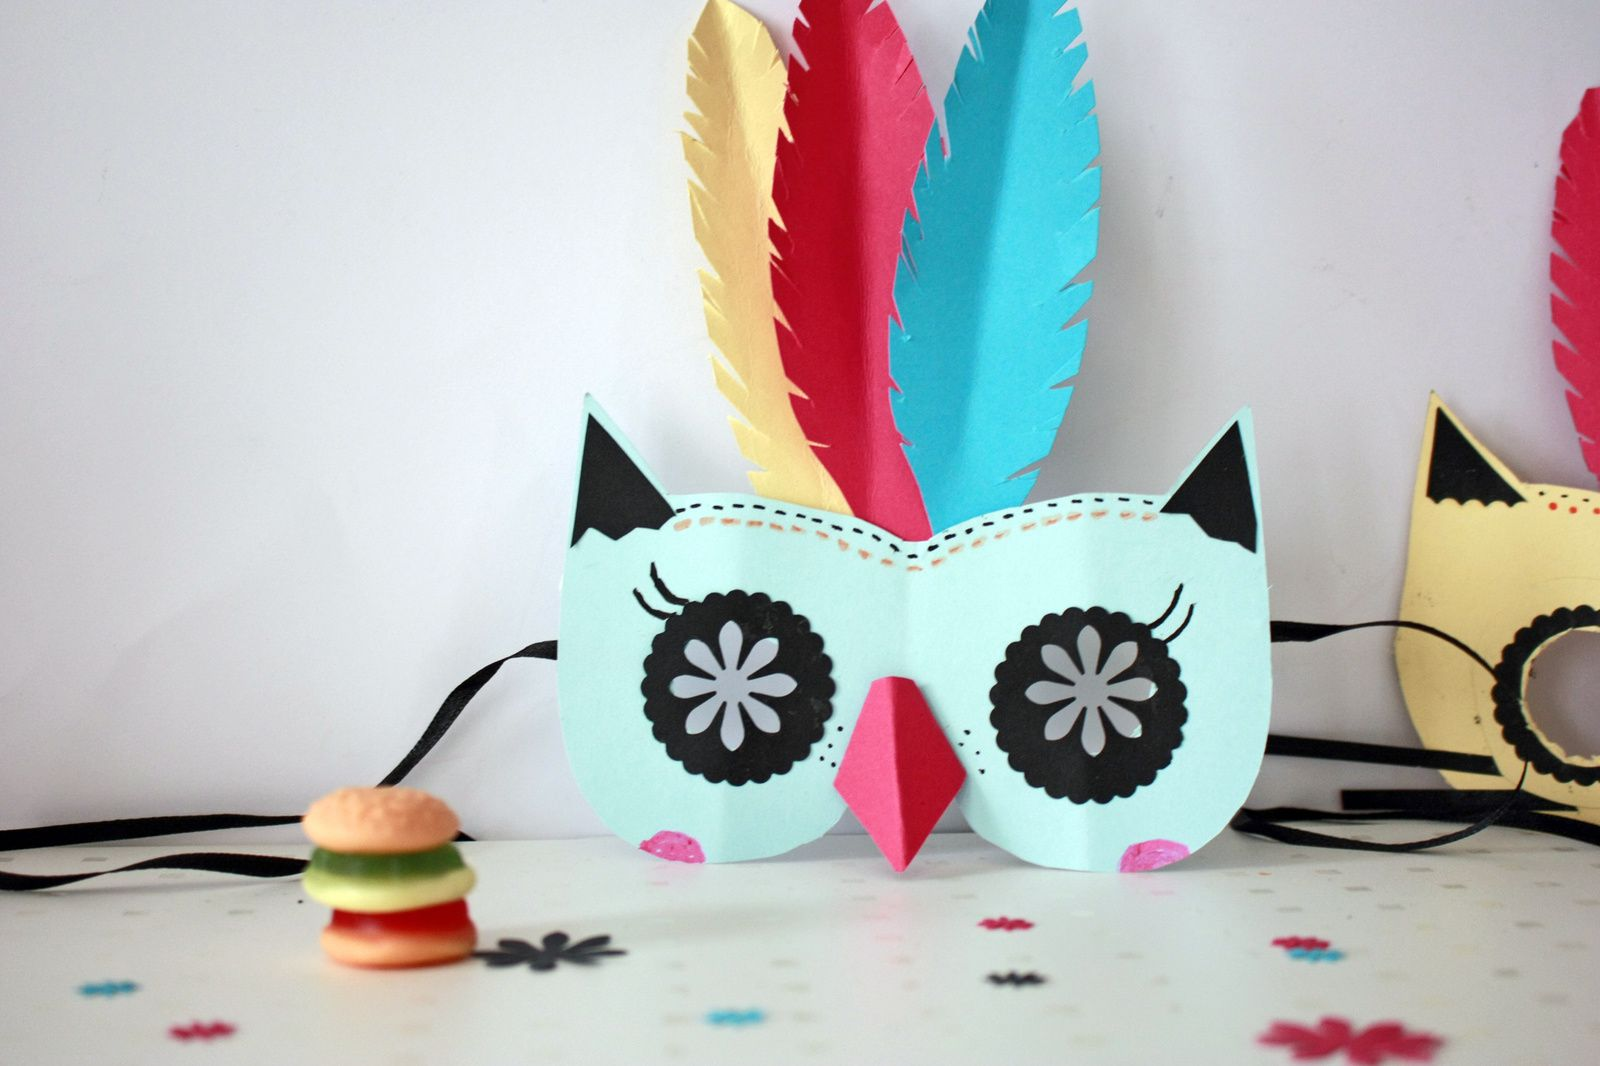 Masques en papier : Diy